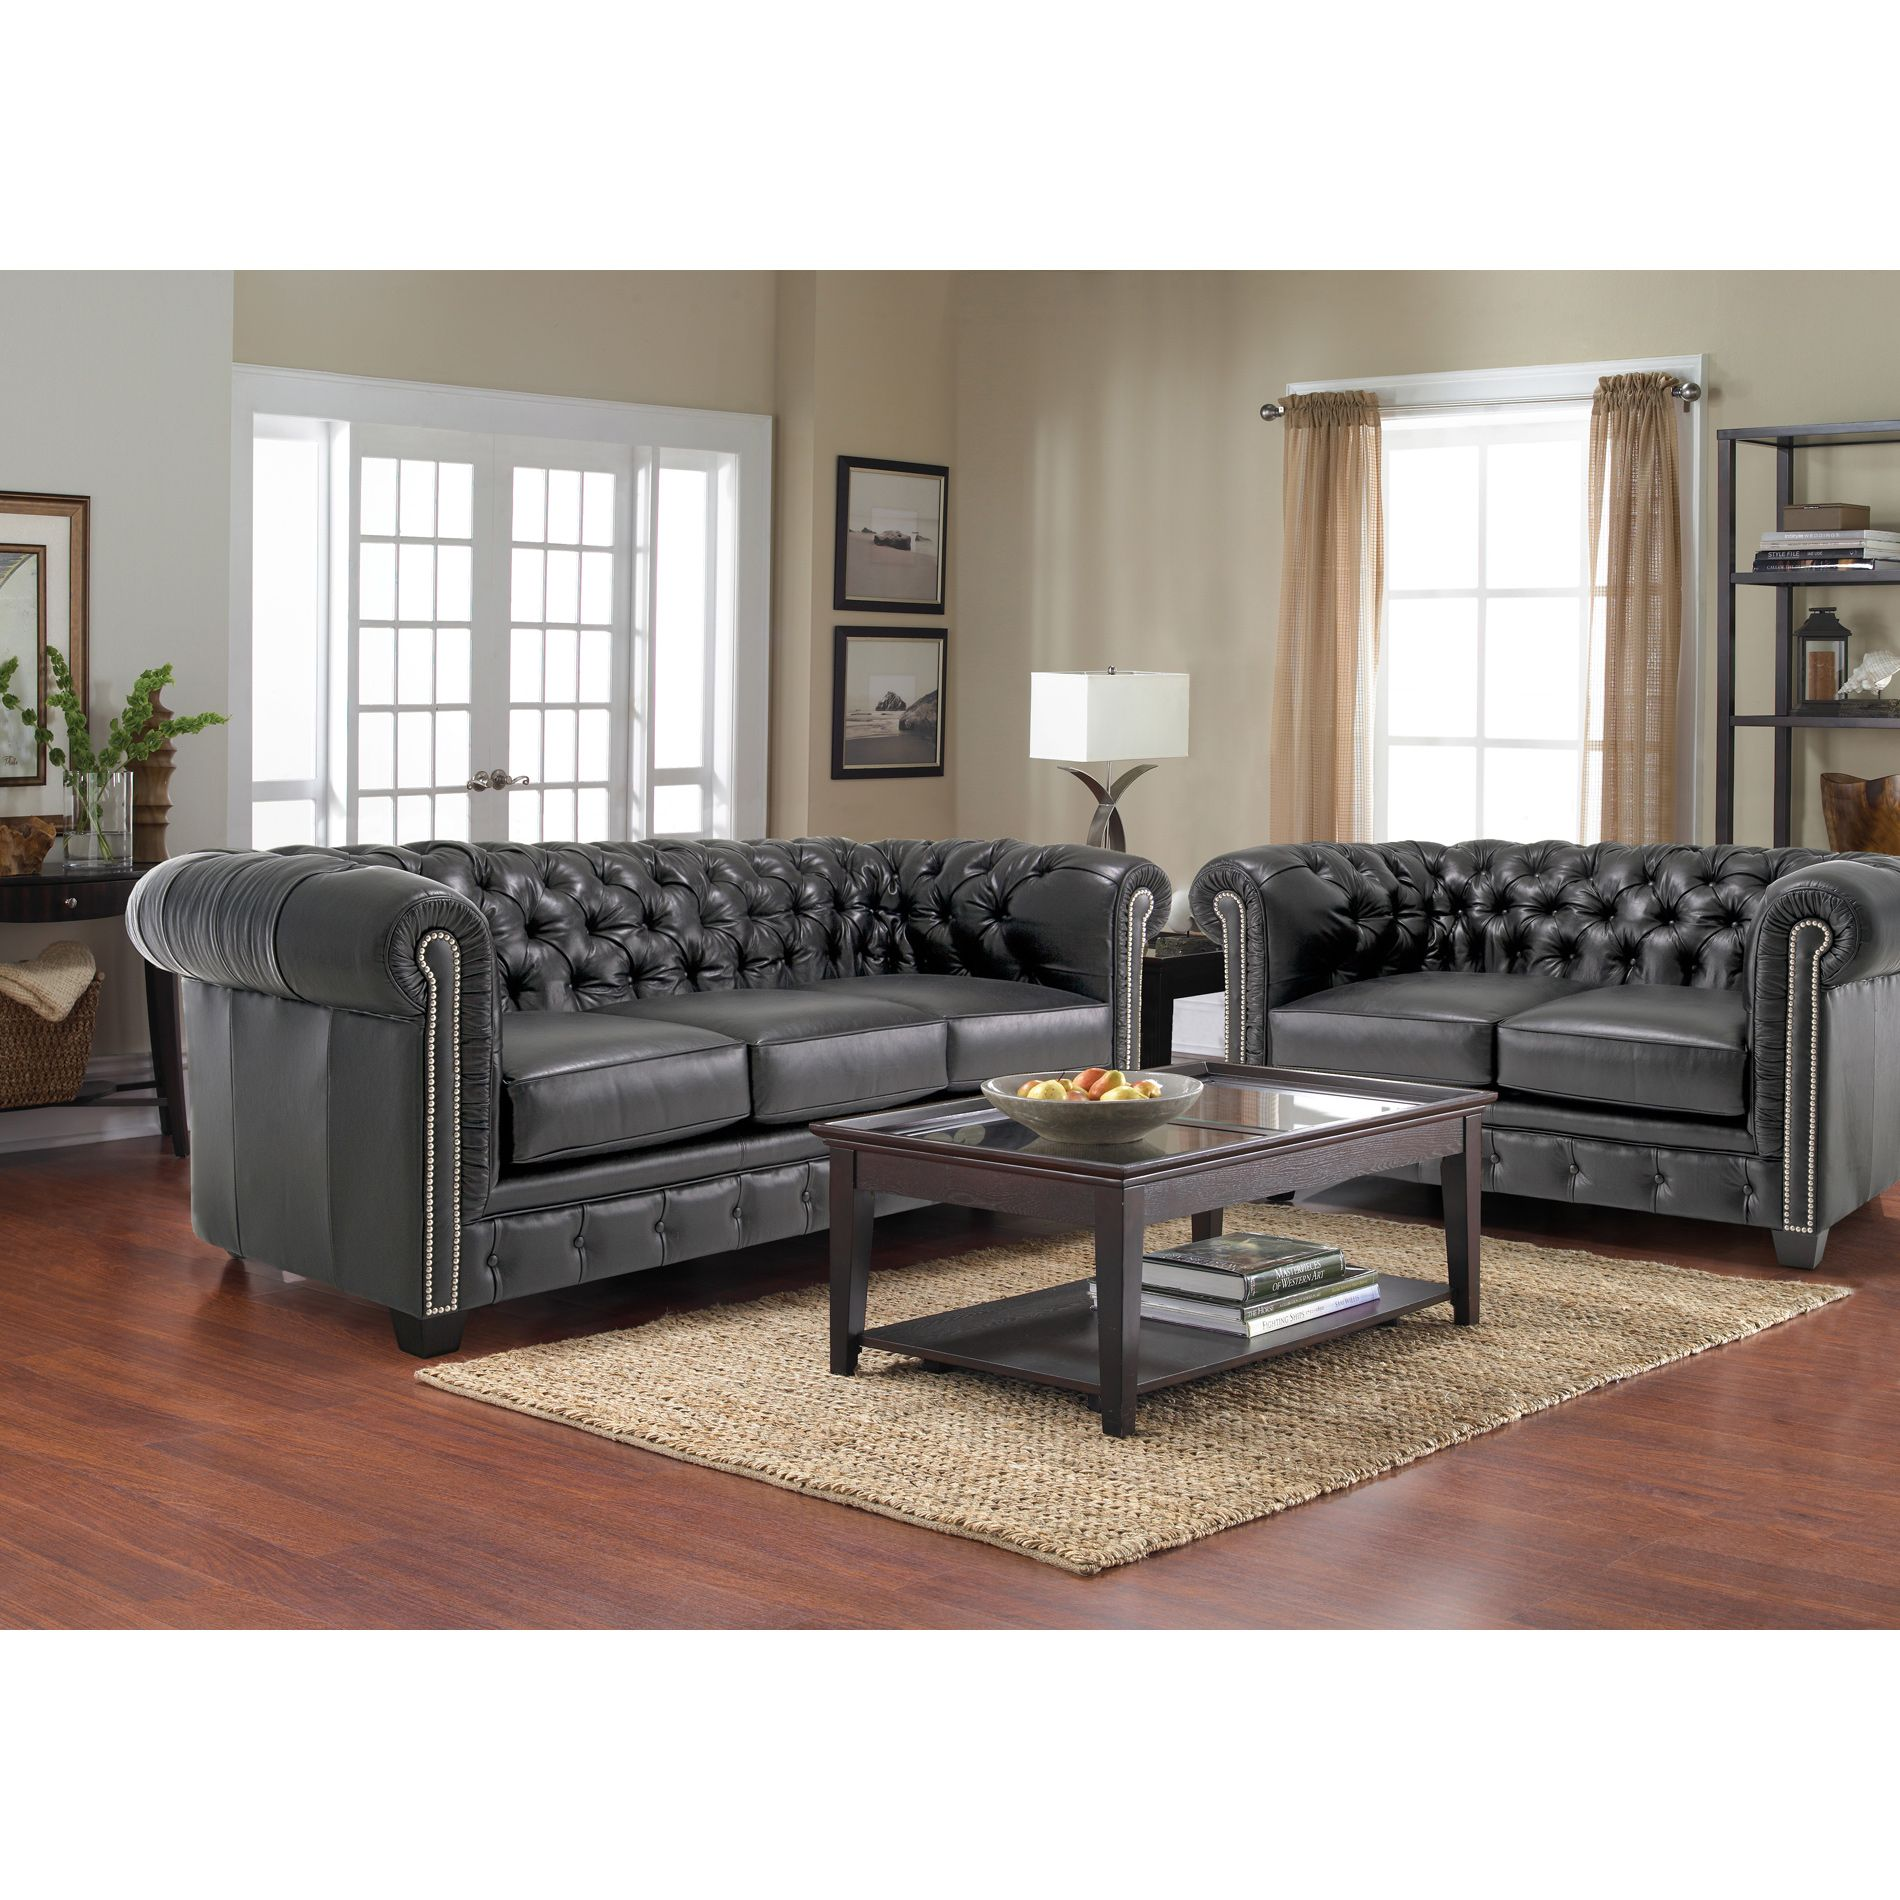 Exceptional Loveseats For Less. Italian Leather SofaBlack ...